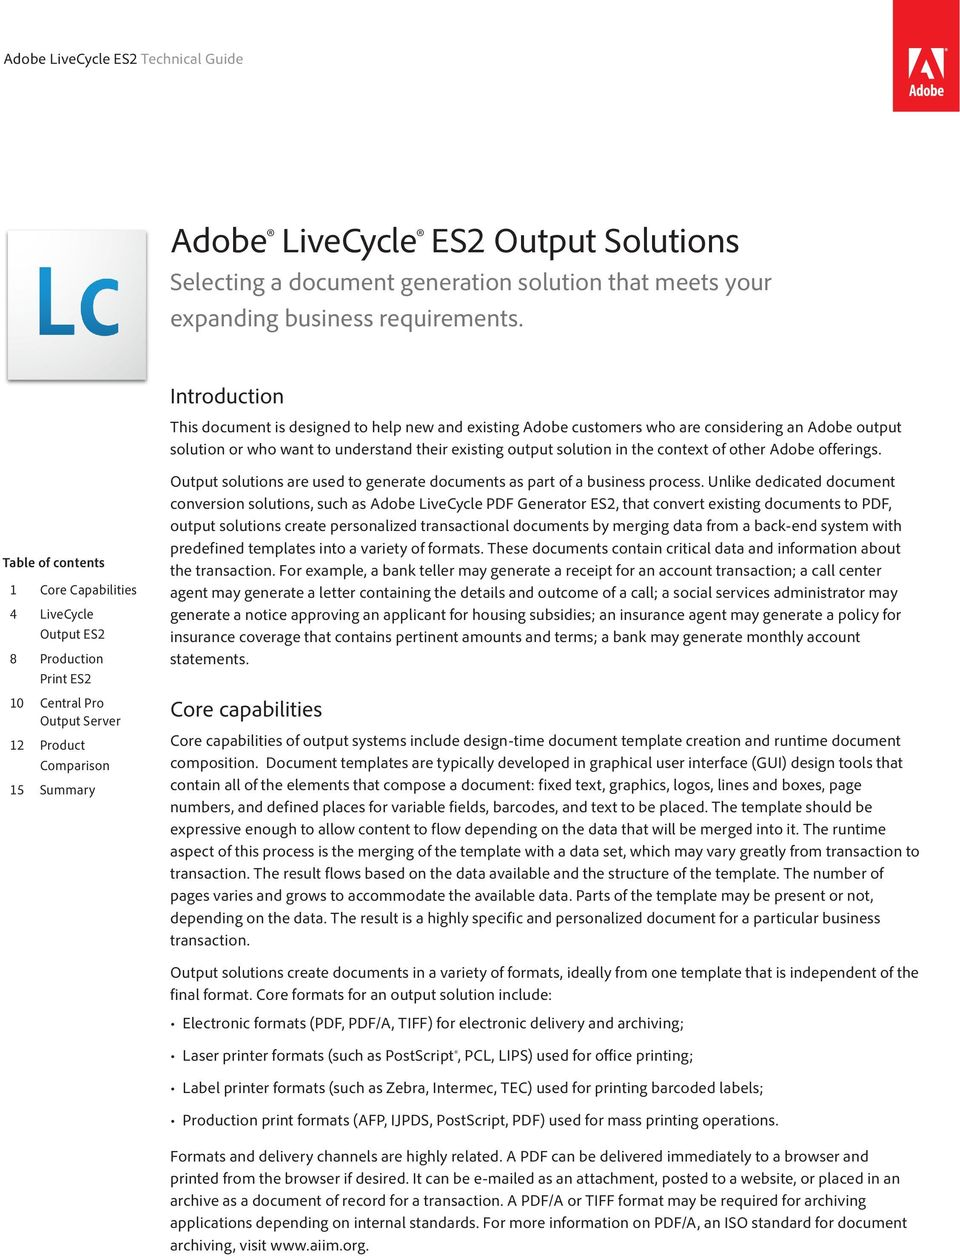 Adobe Livecycle Es2 Output Solutions Pdf